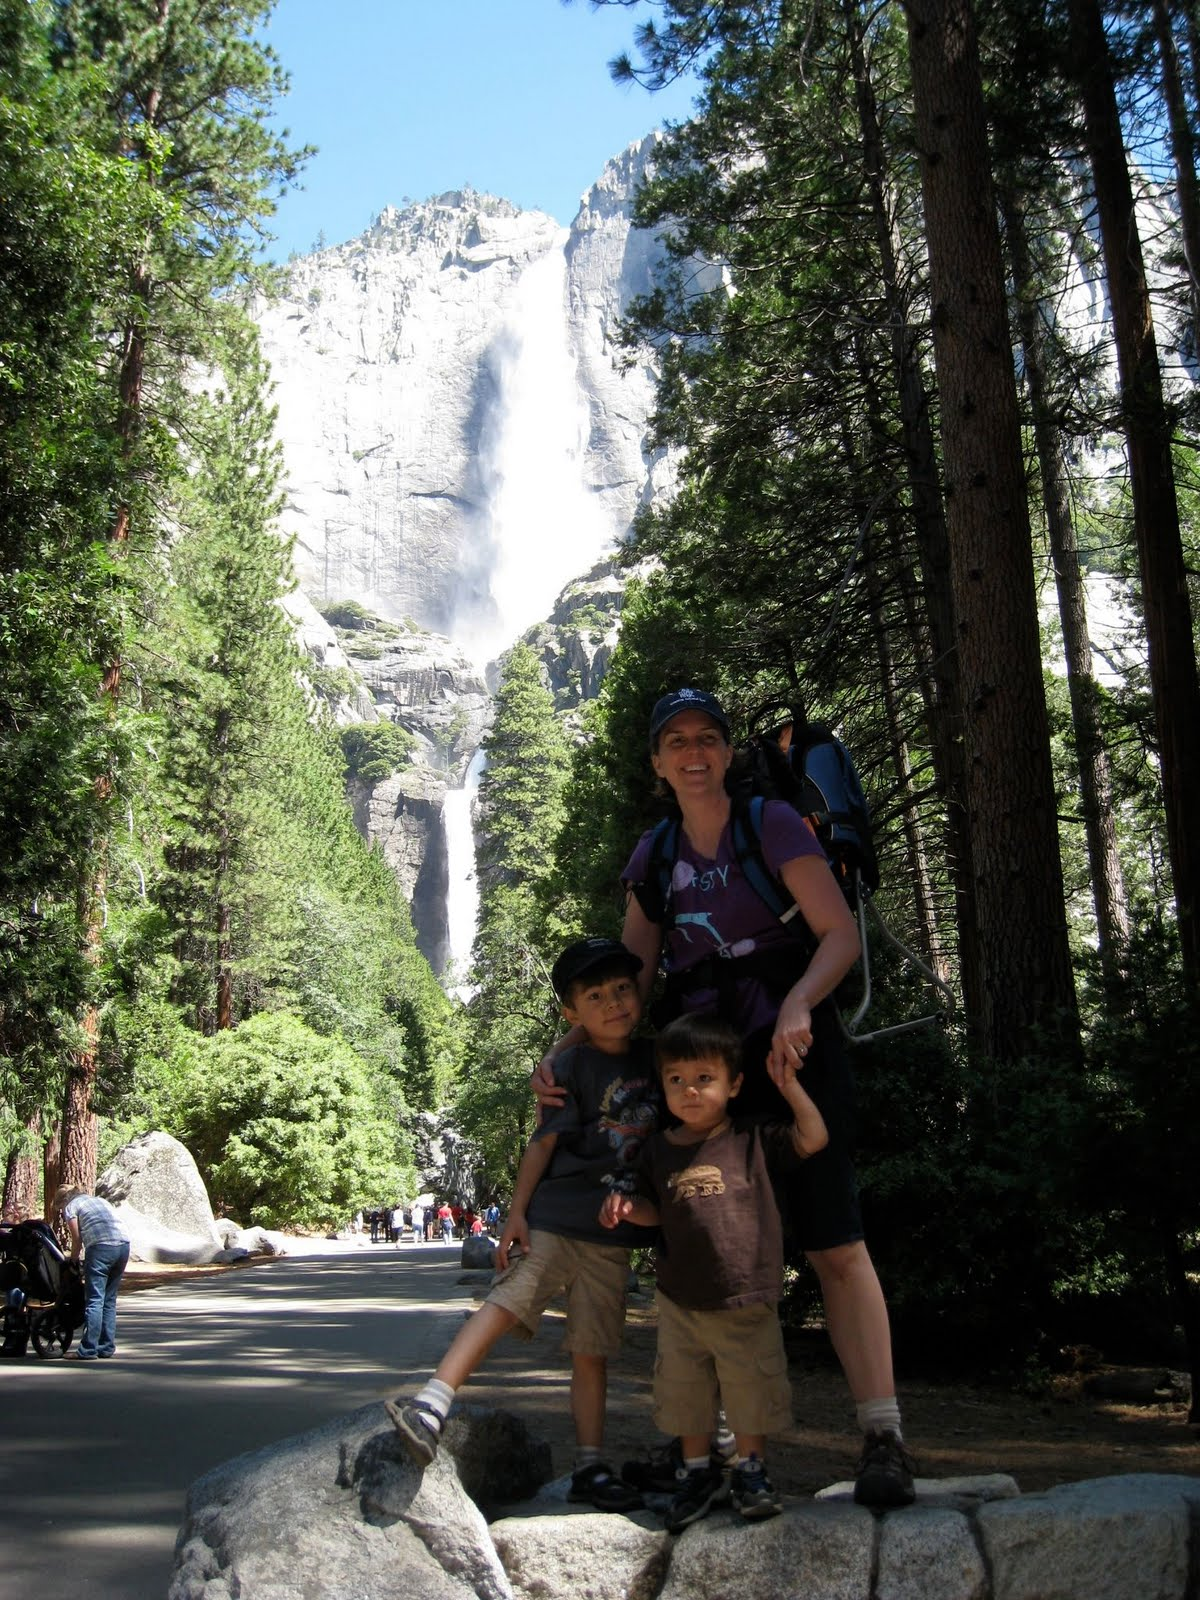 Finding Lower Yosemite Falls